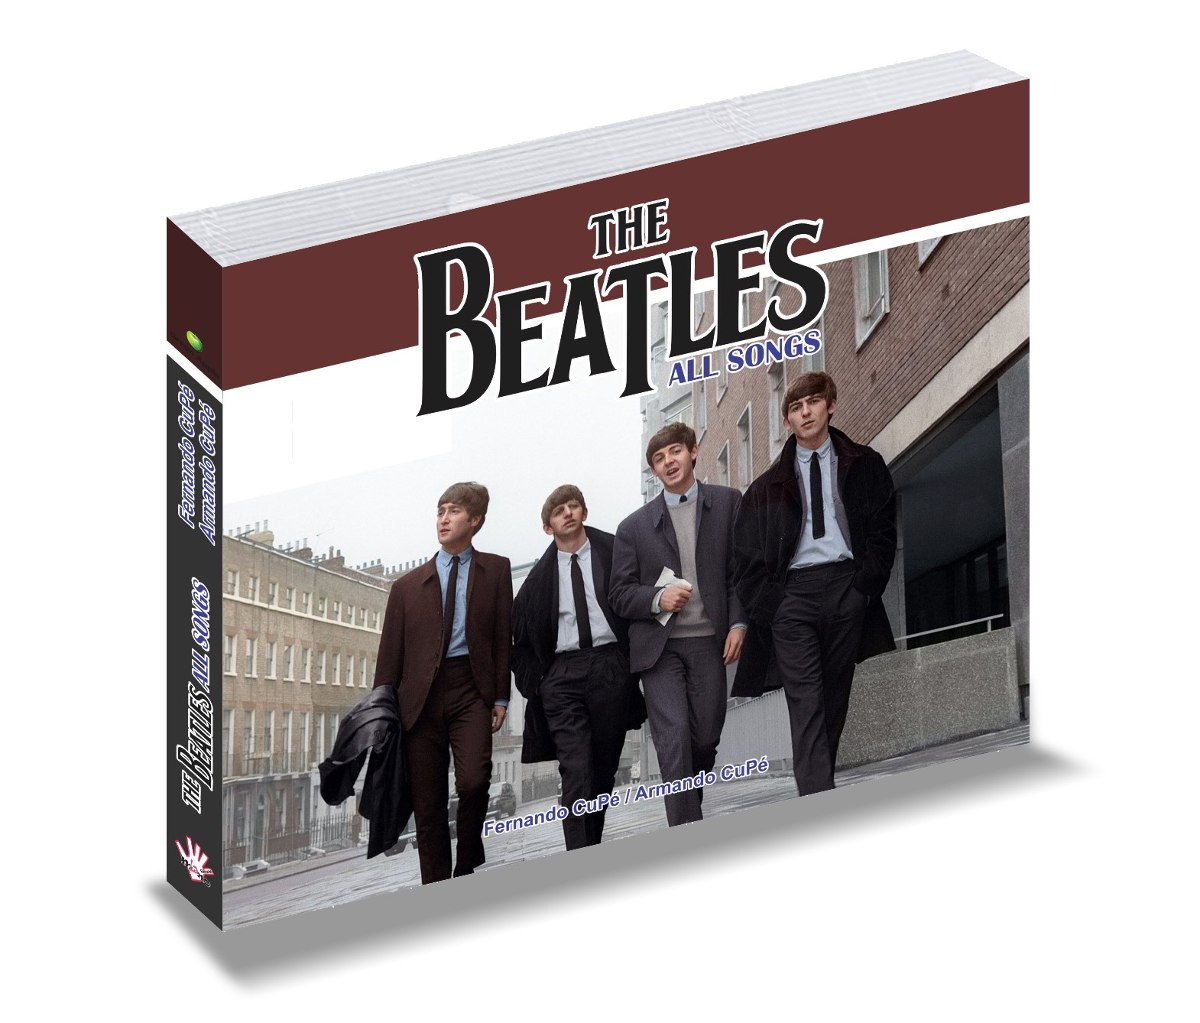 Libros Beatles 10 Libros Cancionero The Beatles All Songs Dhl Fedex